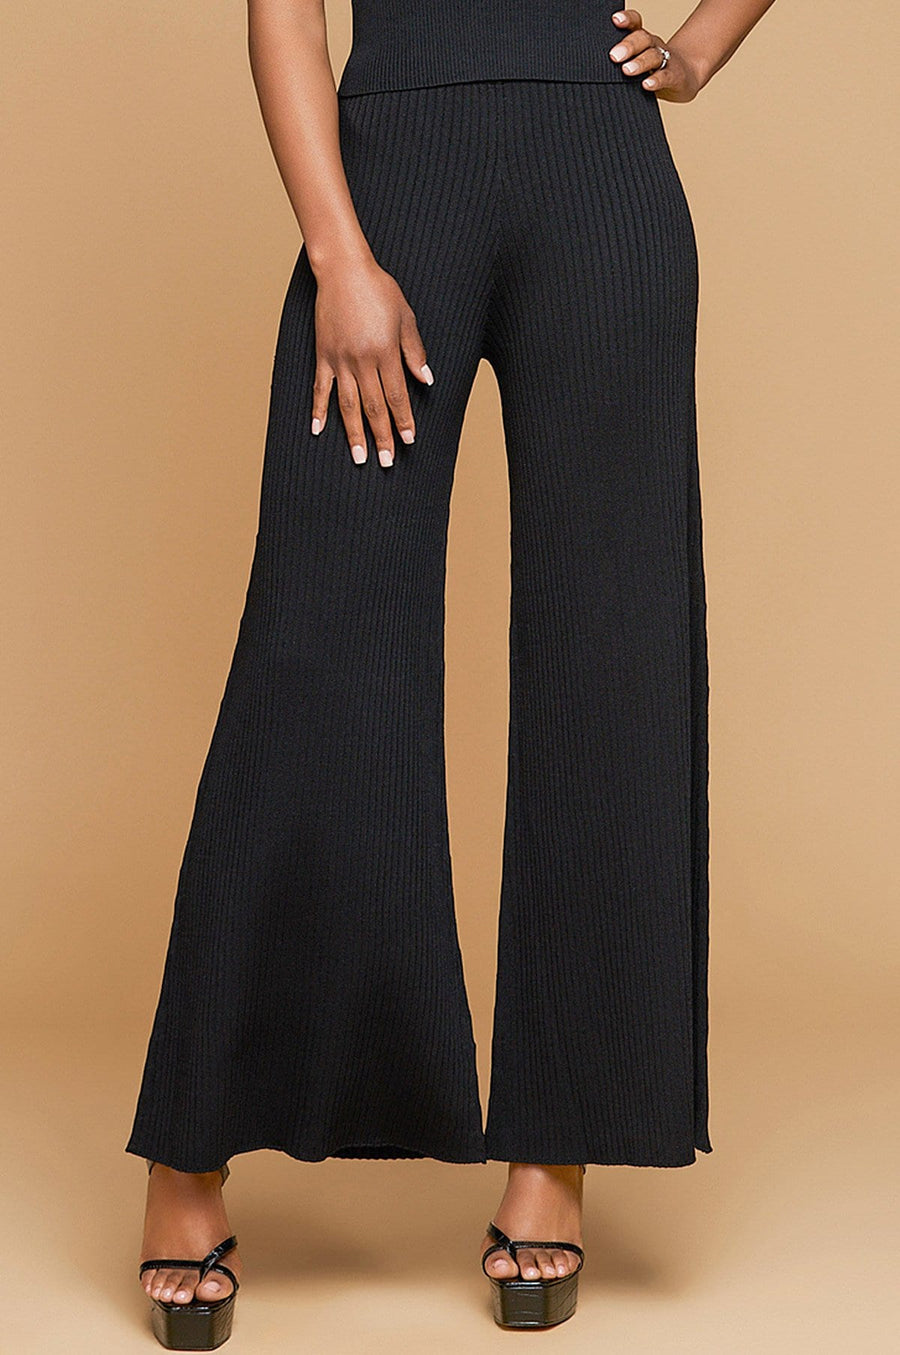 'Georgia' Ribbed Knit Pants